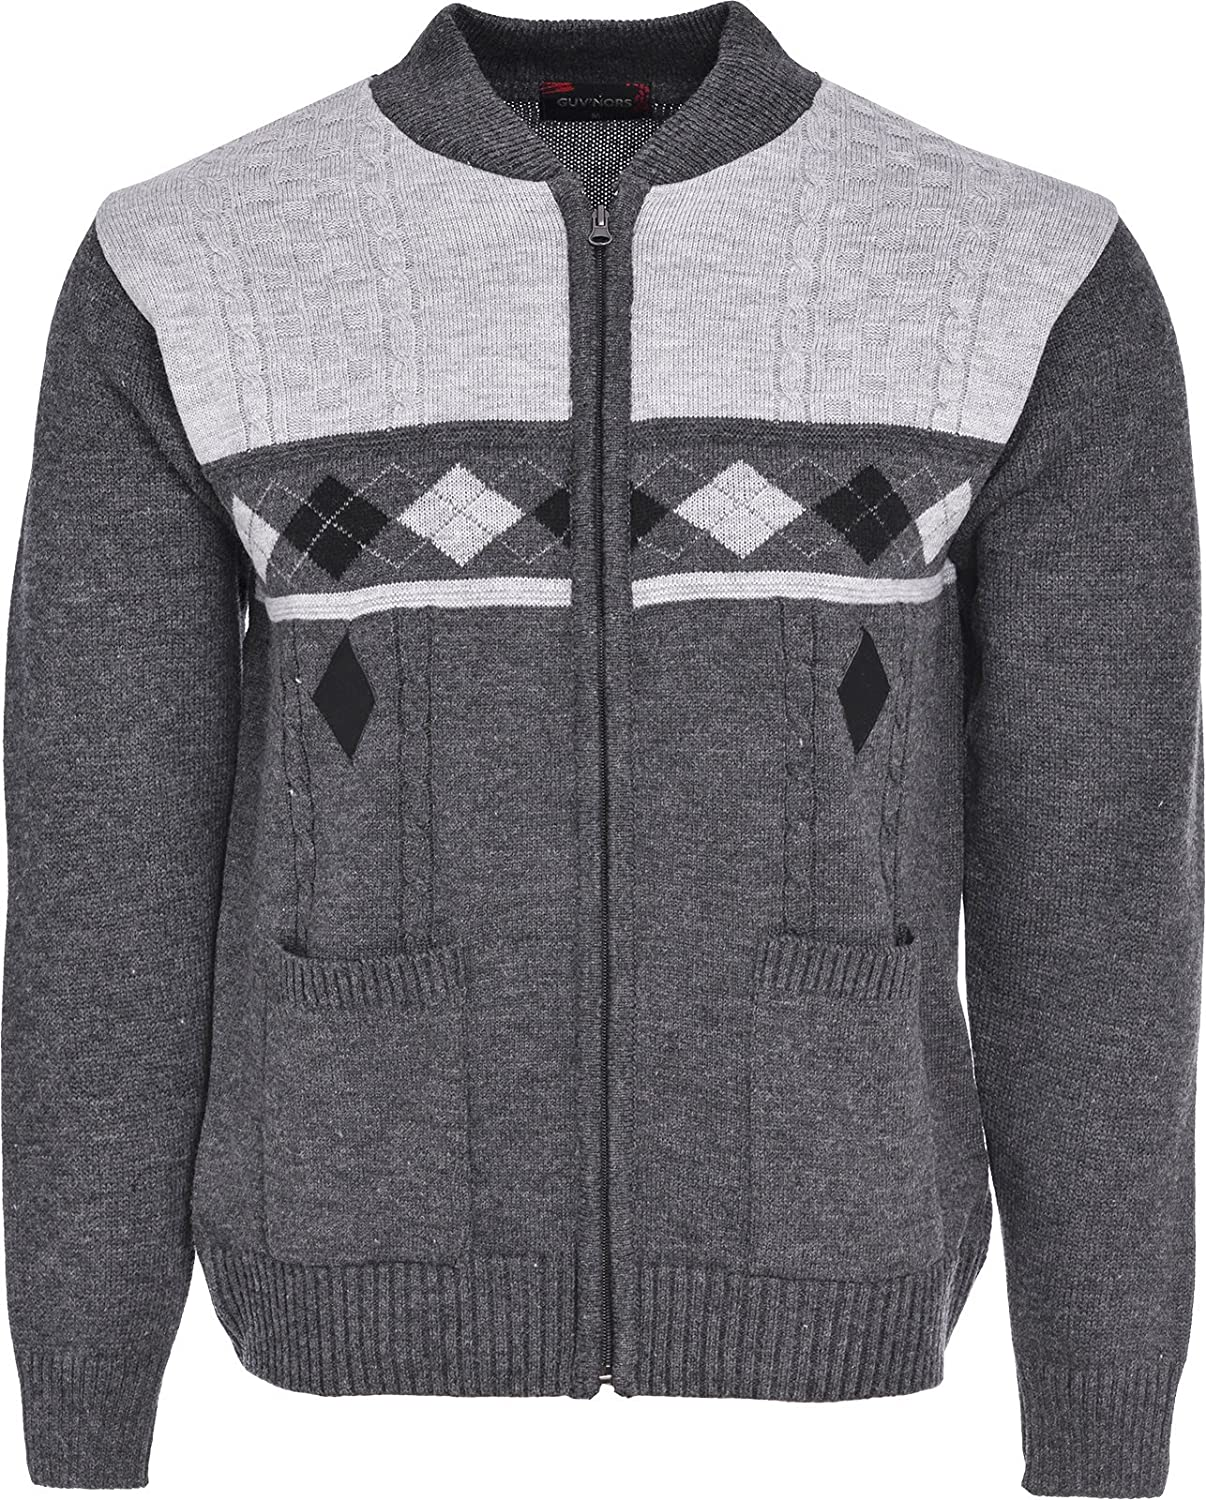 Mens Knitted Cardigan Full Front Zip Closure Dual Tone Design Zipper Top